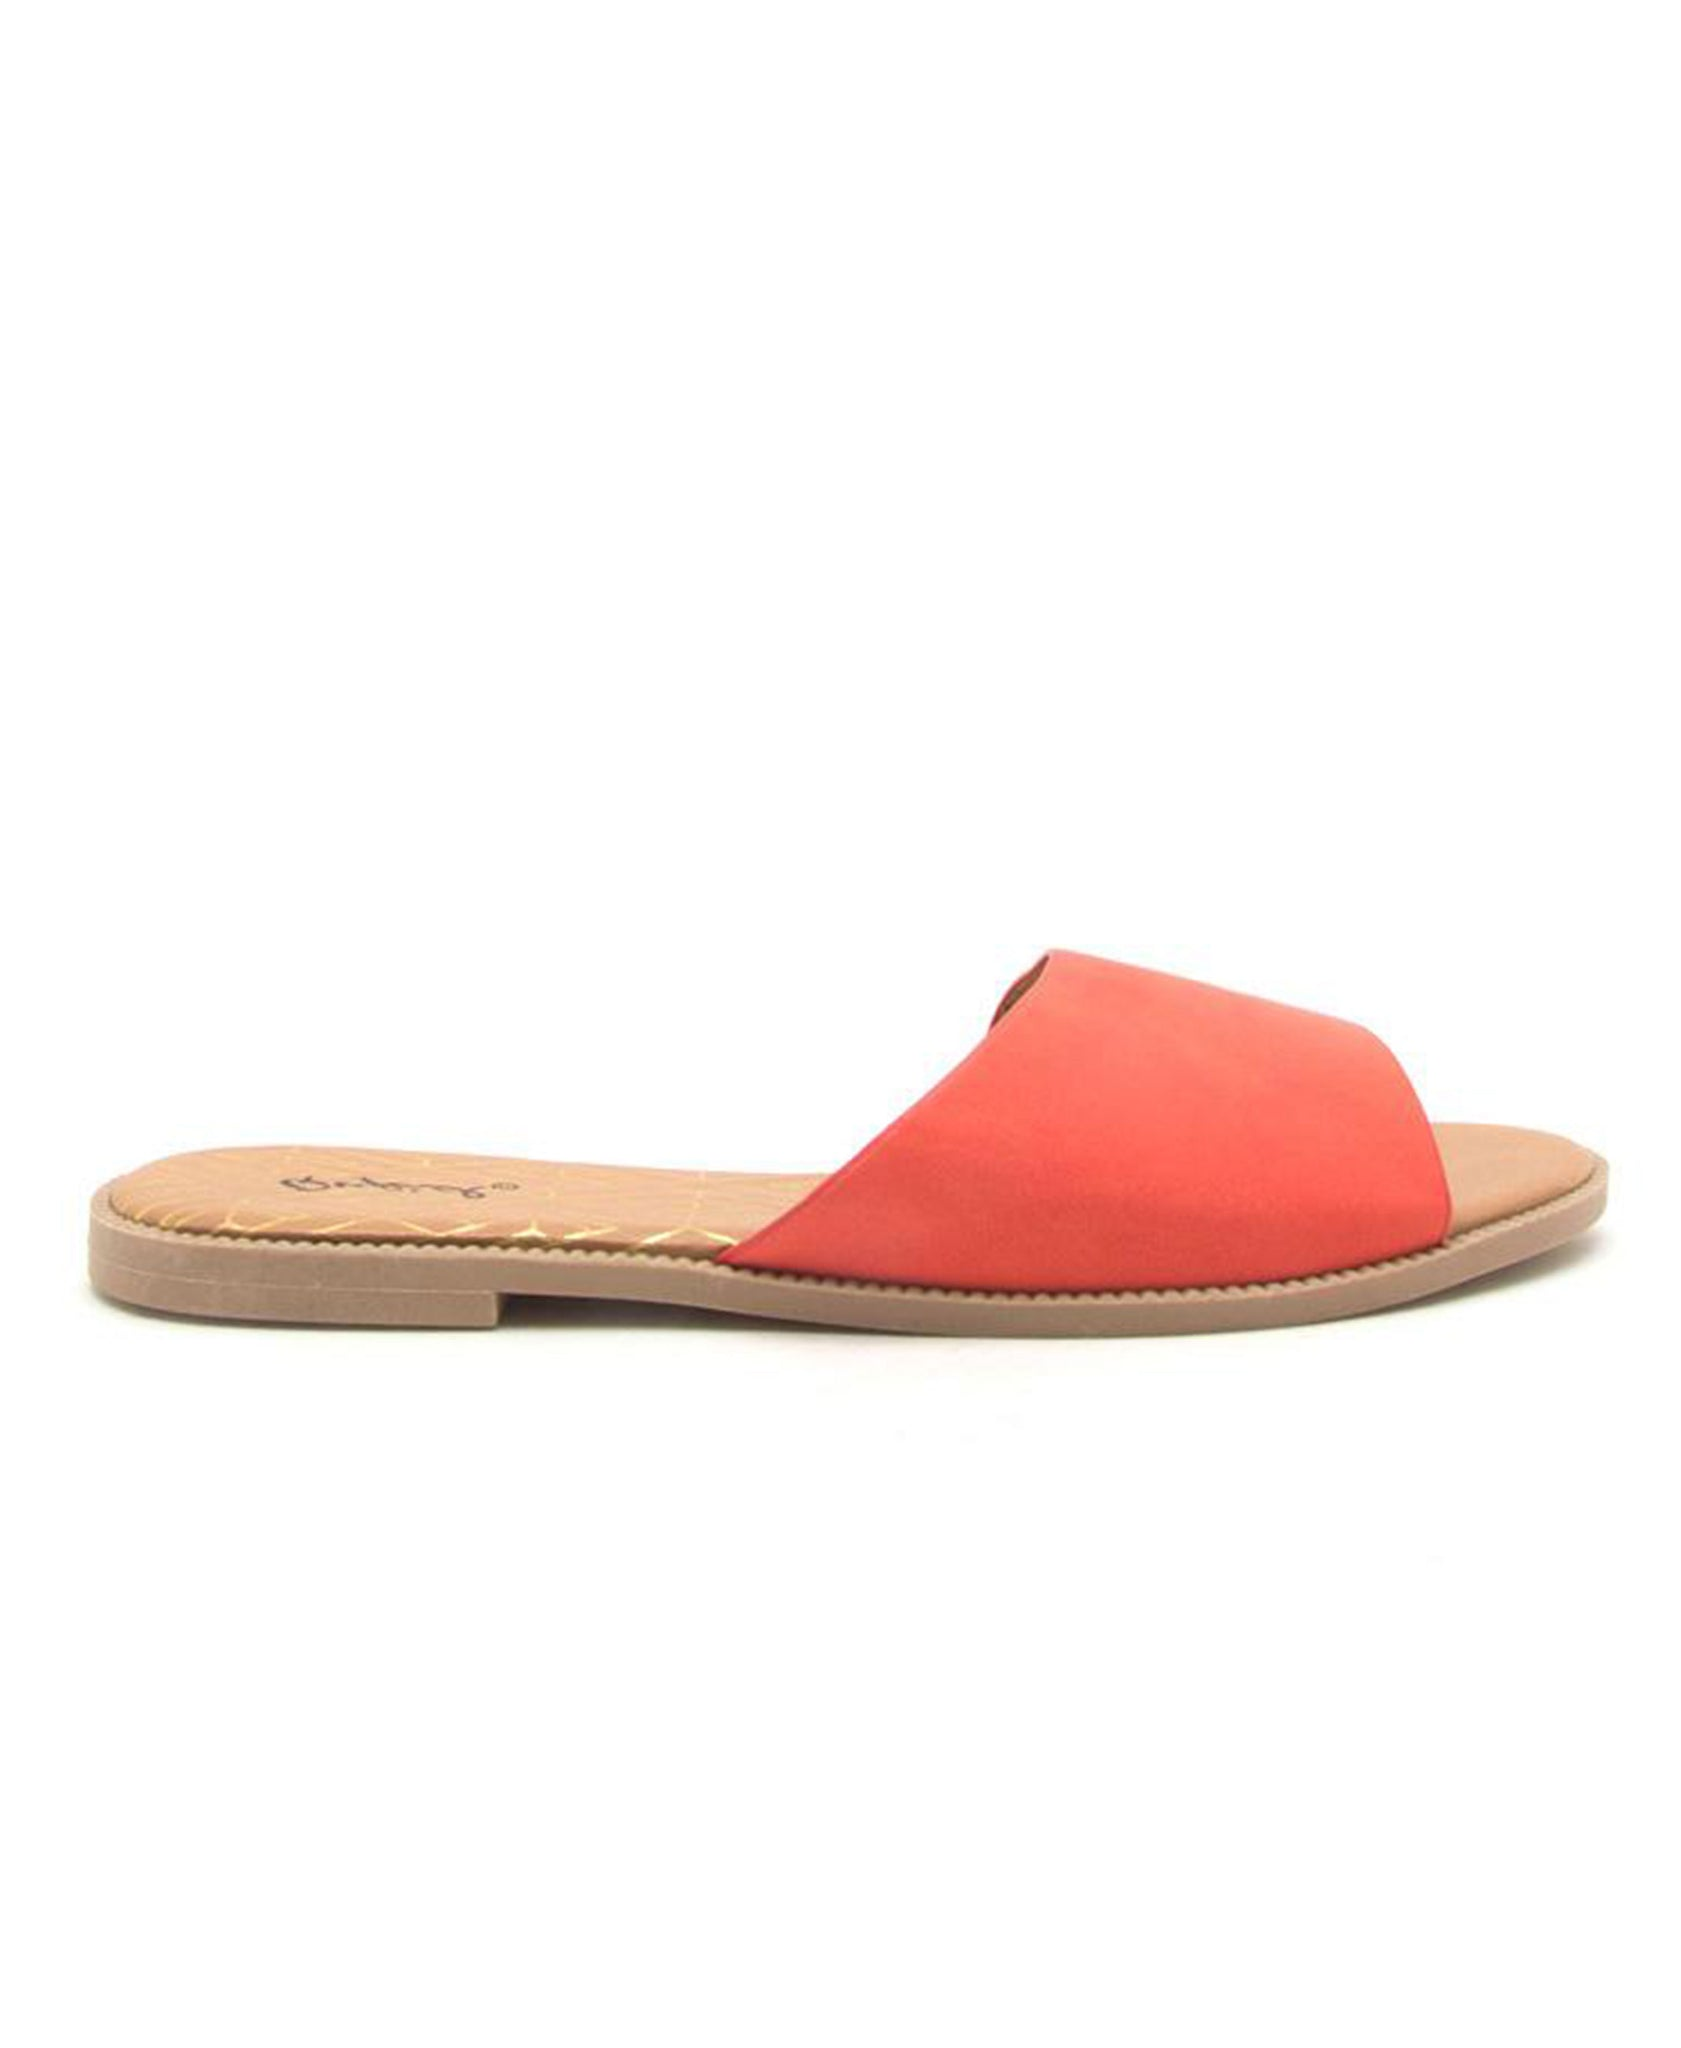 Desmond One Band Sandal - Blood Orange